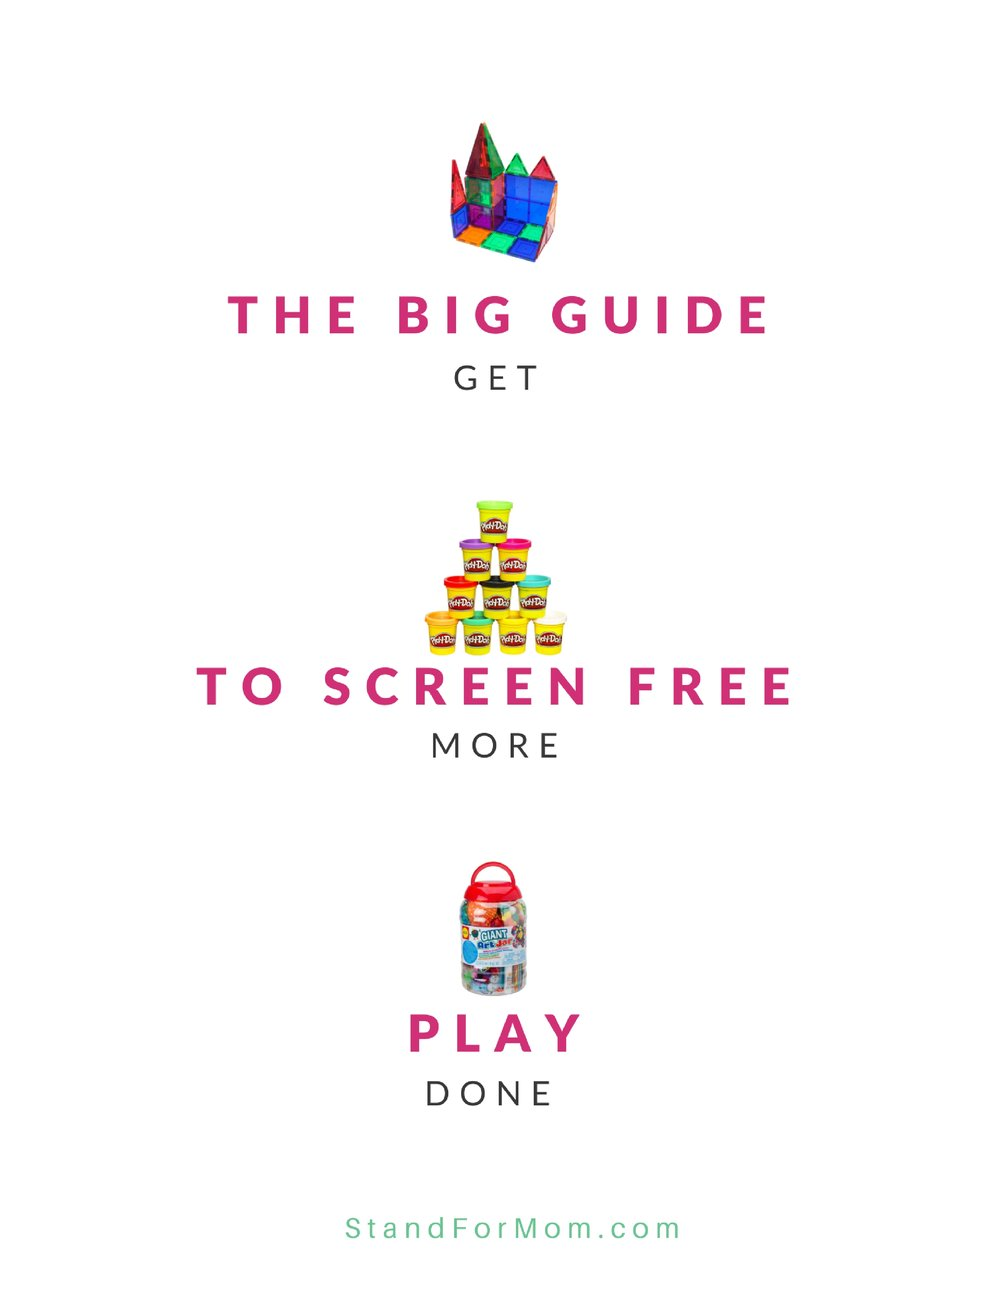 The Big Guide to Screen Free Play - Download here